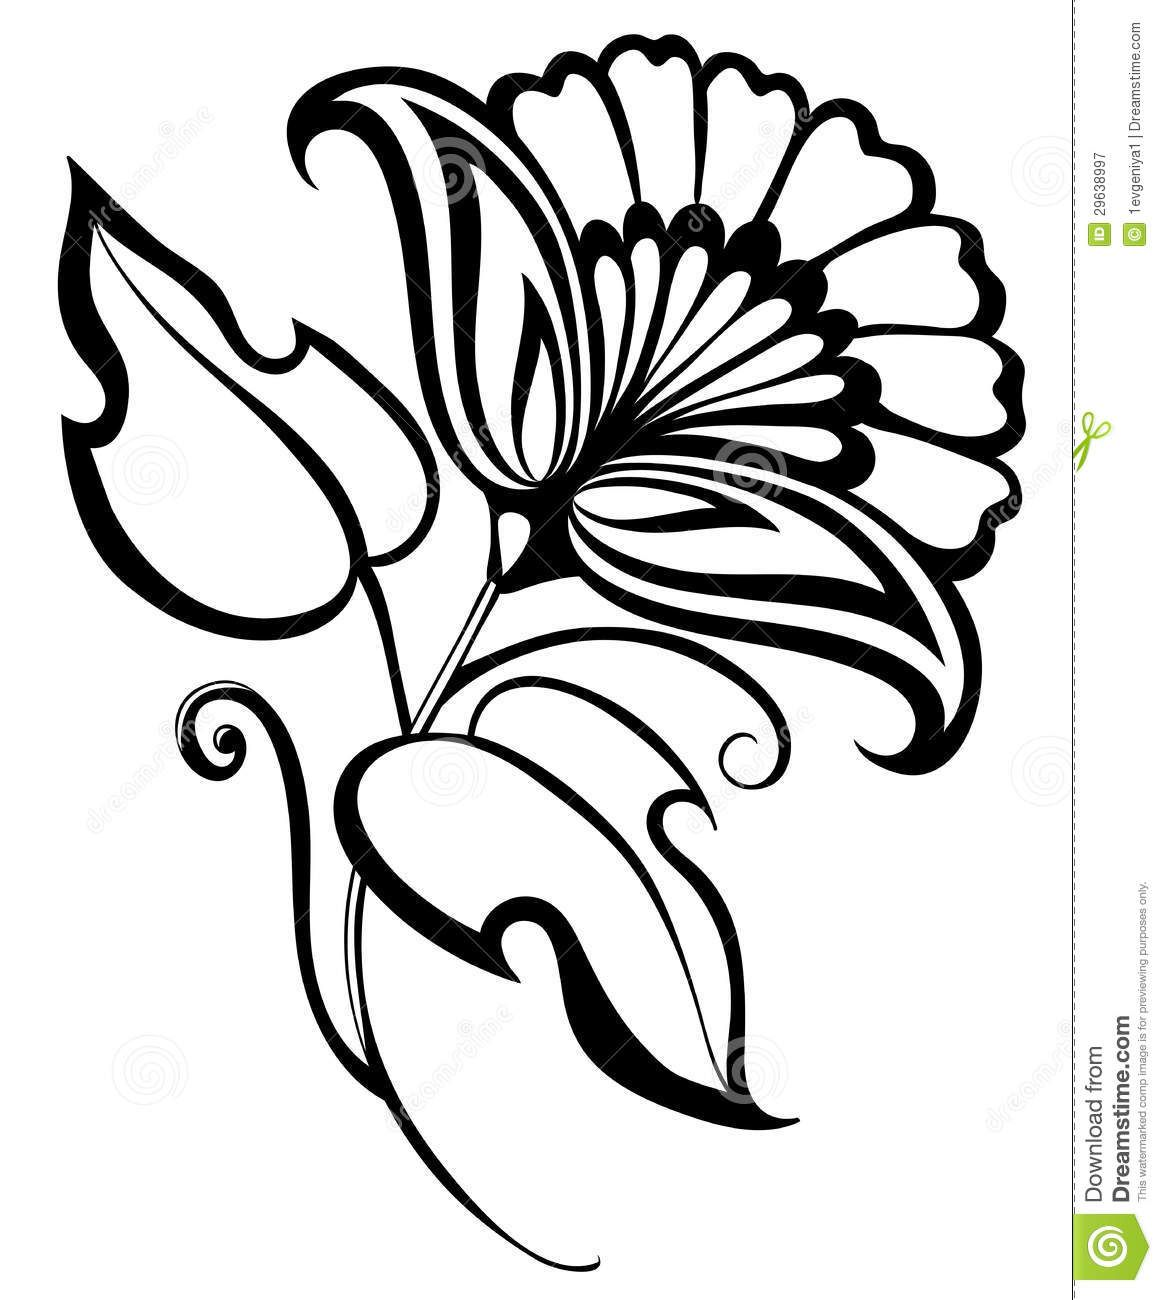 Beautiful Flower Line Drawing : Beautiful black white flower hand drawing floral design